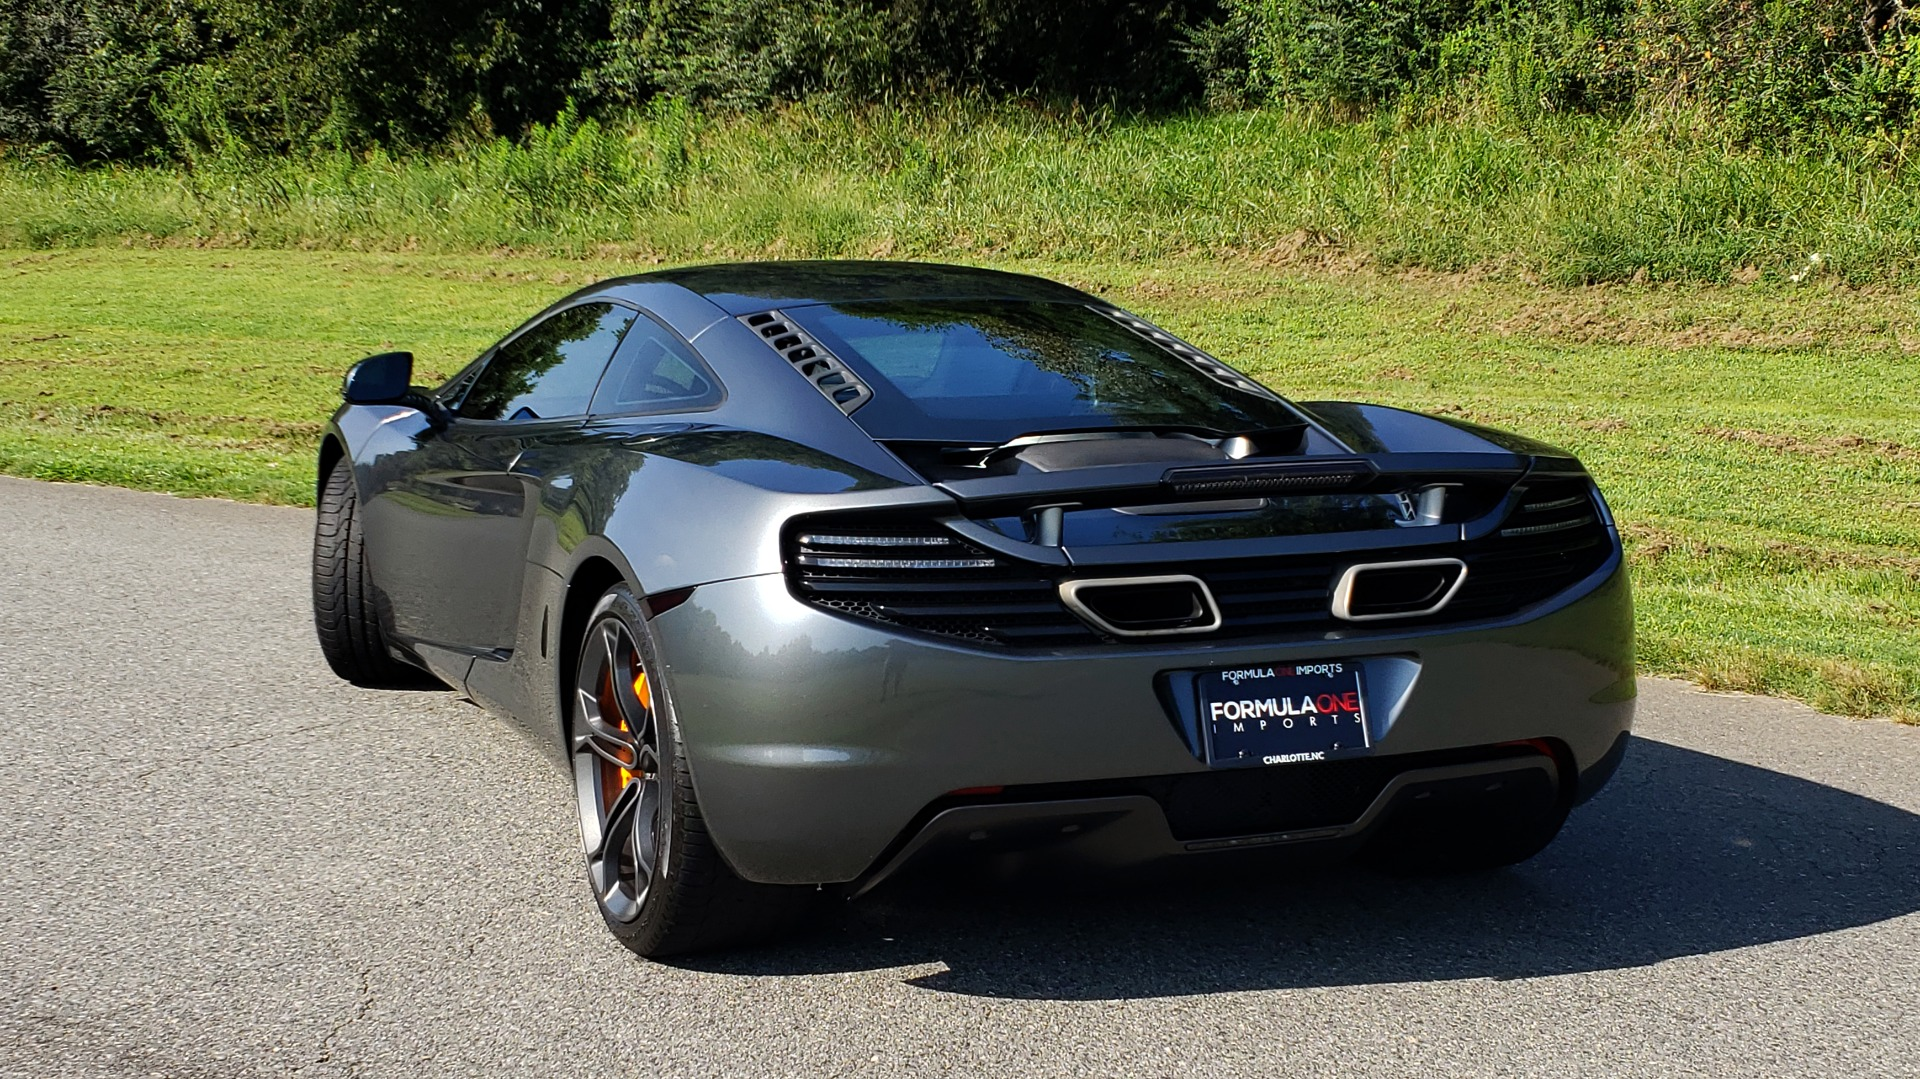 Used 2012 McLaren MP4-12C COUPE / 3.8 L V8 592HP / AUTO / NAV / CCB / LOW MILES for sale Sold at Formula Imports in Charlotte NC 28227 5